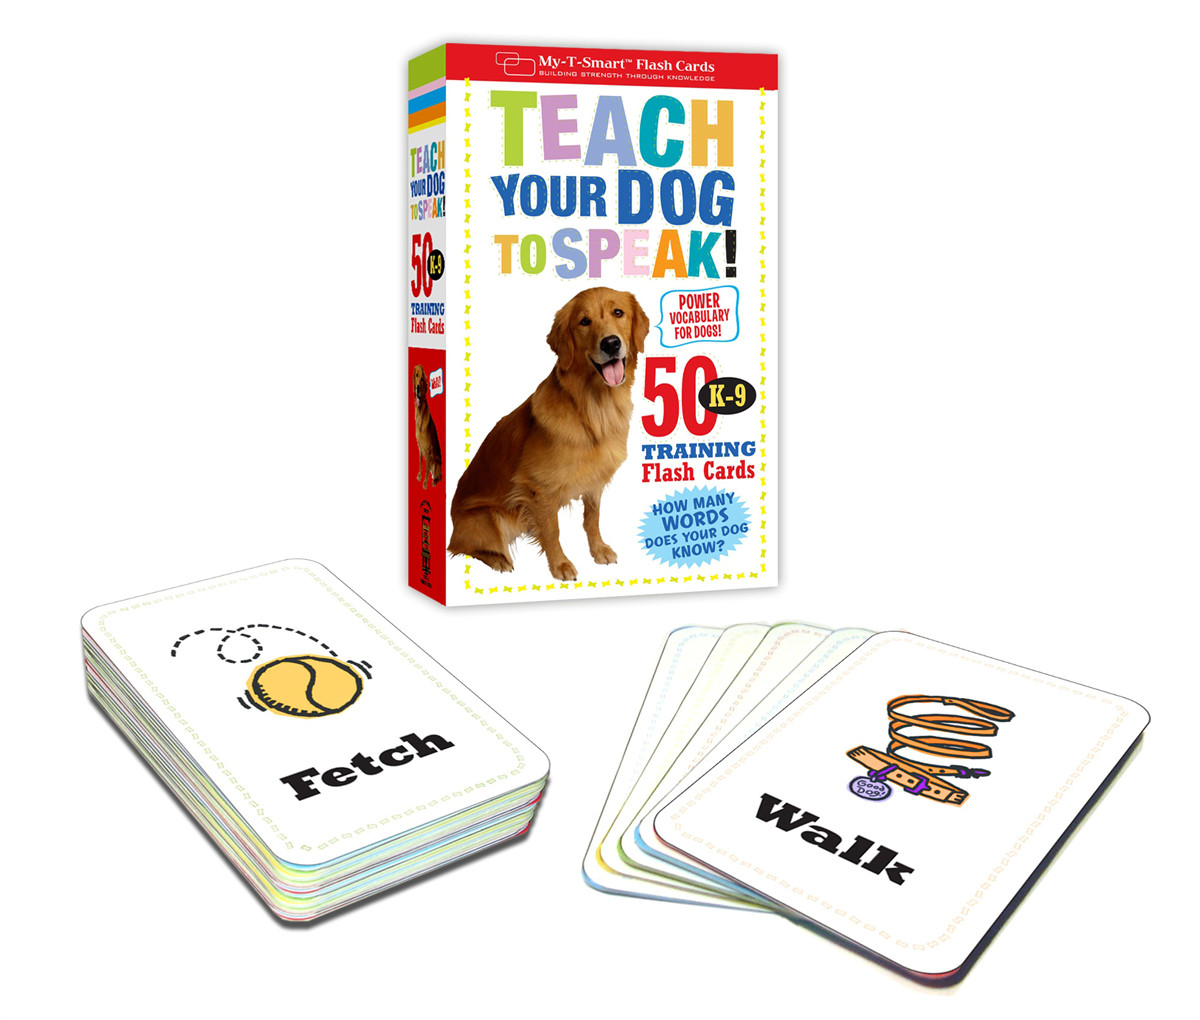 Teach-your-dog-to-speak!-9781933662626.in01